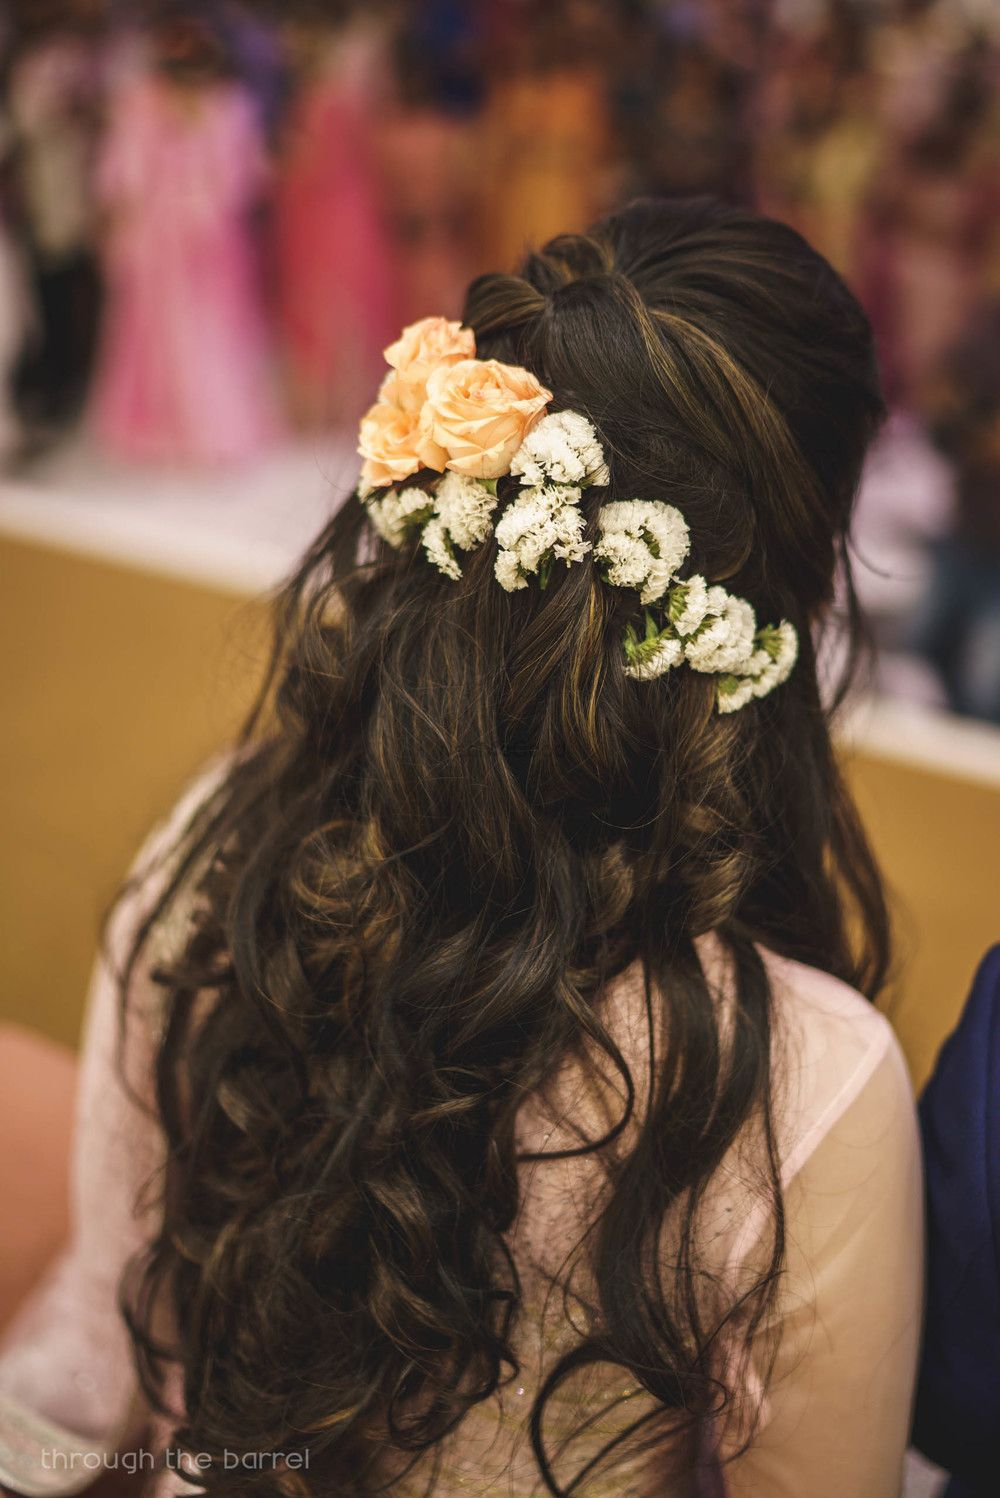 Photo of Engagement hairstyle with flowers in hair